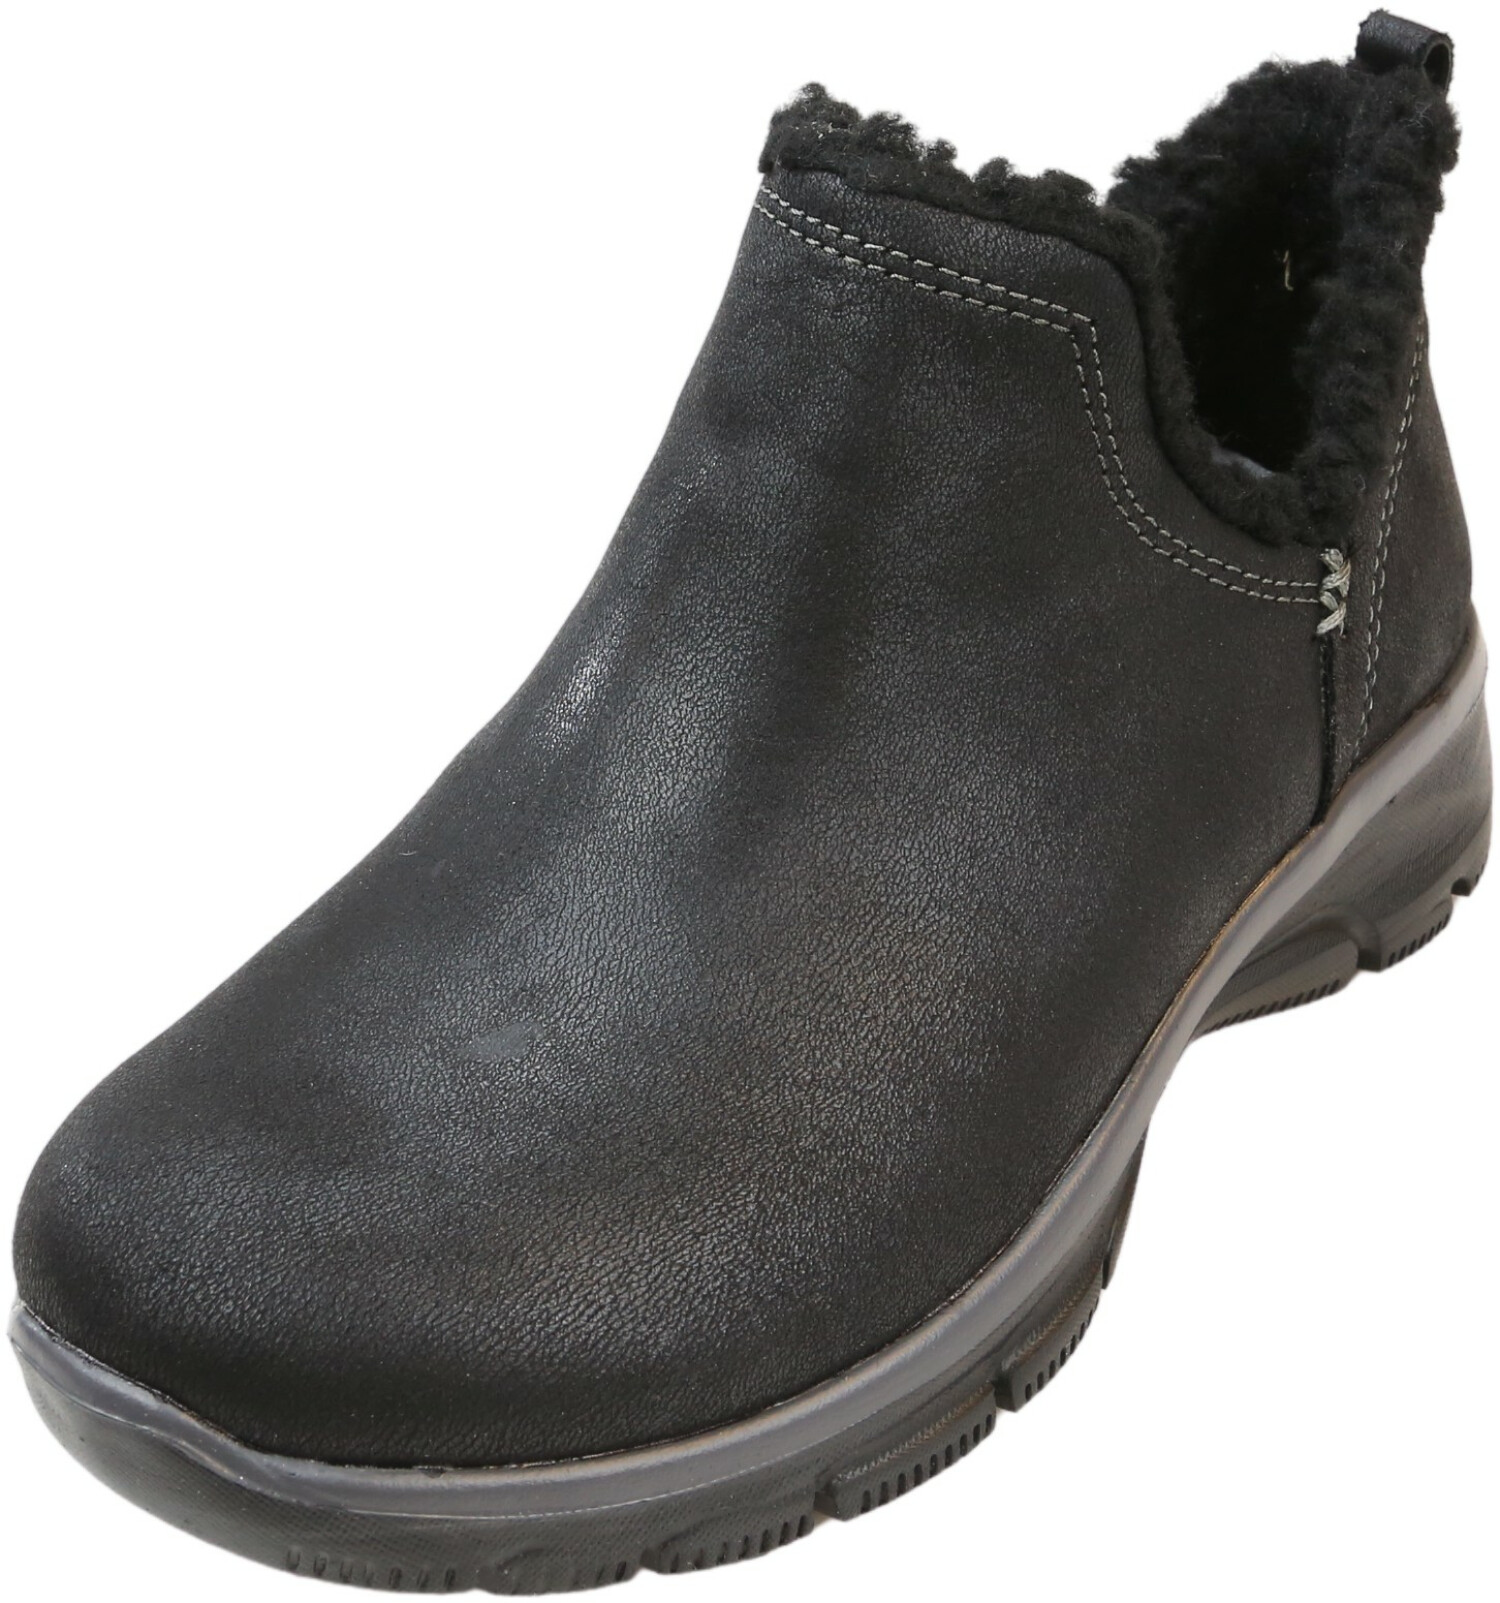 Skechers Women's Easy Going-Buried Black High-Top Fabric Snow Boot - 5M